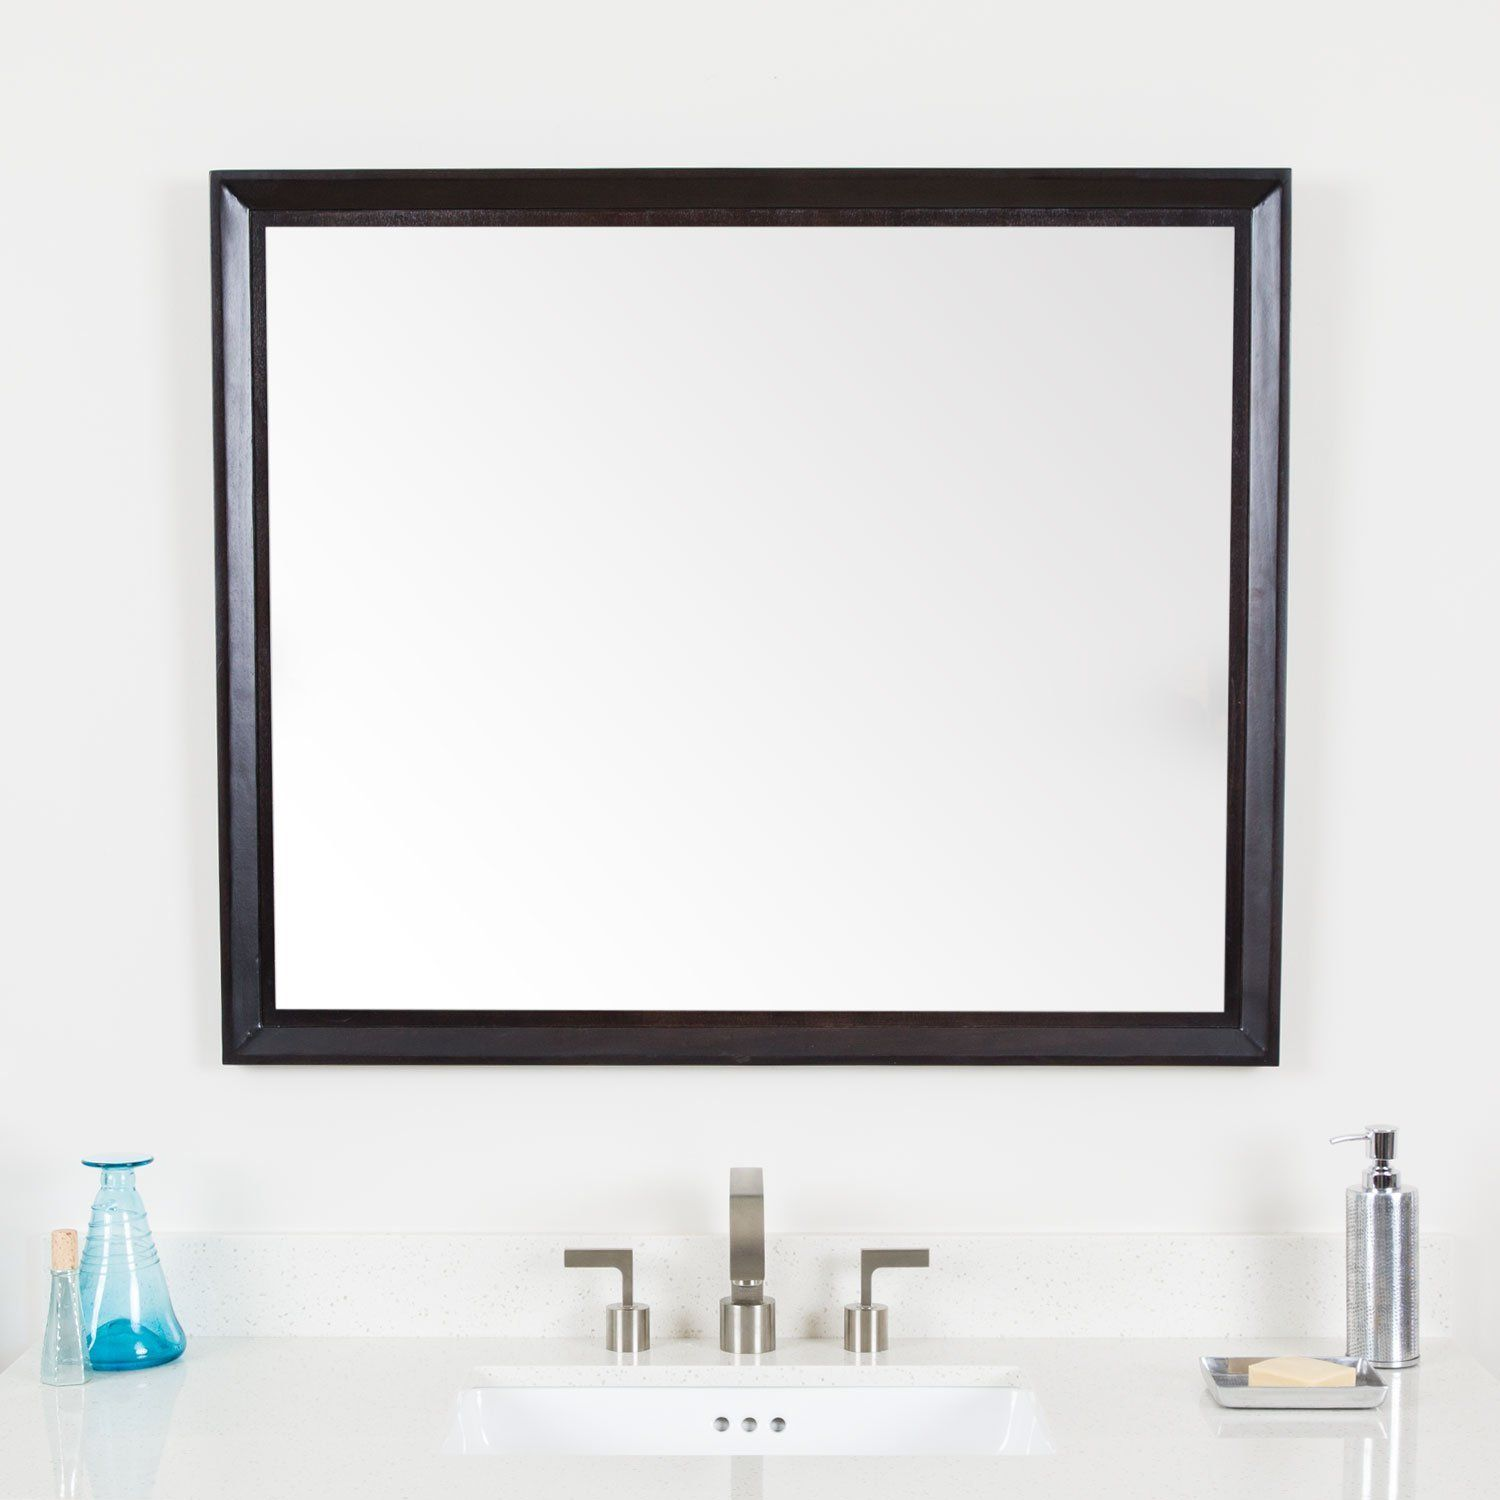 Maykke Imogen 30 H X 36 W Rectangle Brown Wall Decor Bathroom Vanity Mirror Wood Framed Mirrors For Wood Framed Mirror Bathroom Wall Decor Brown Wall Decor